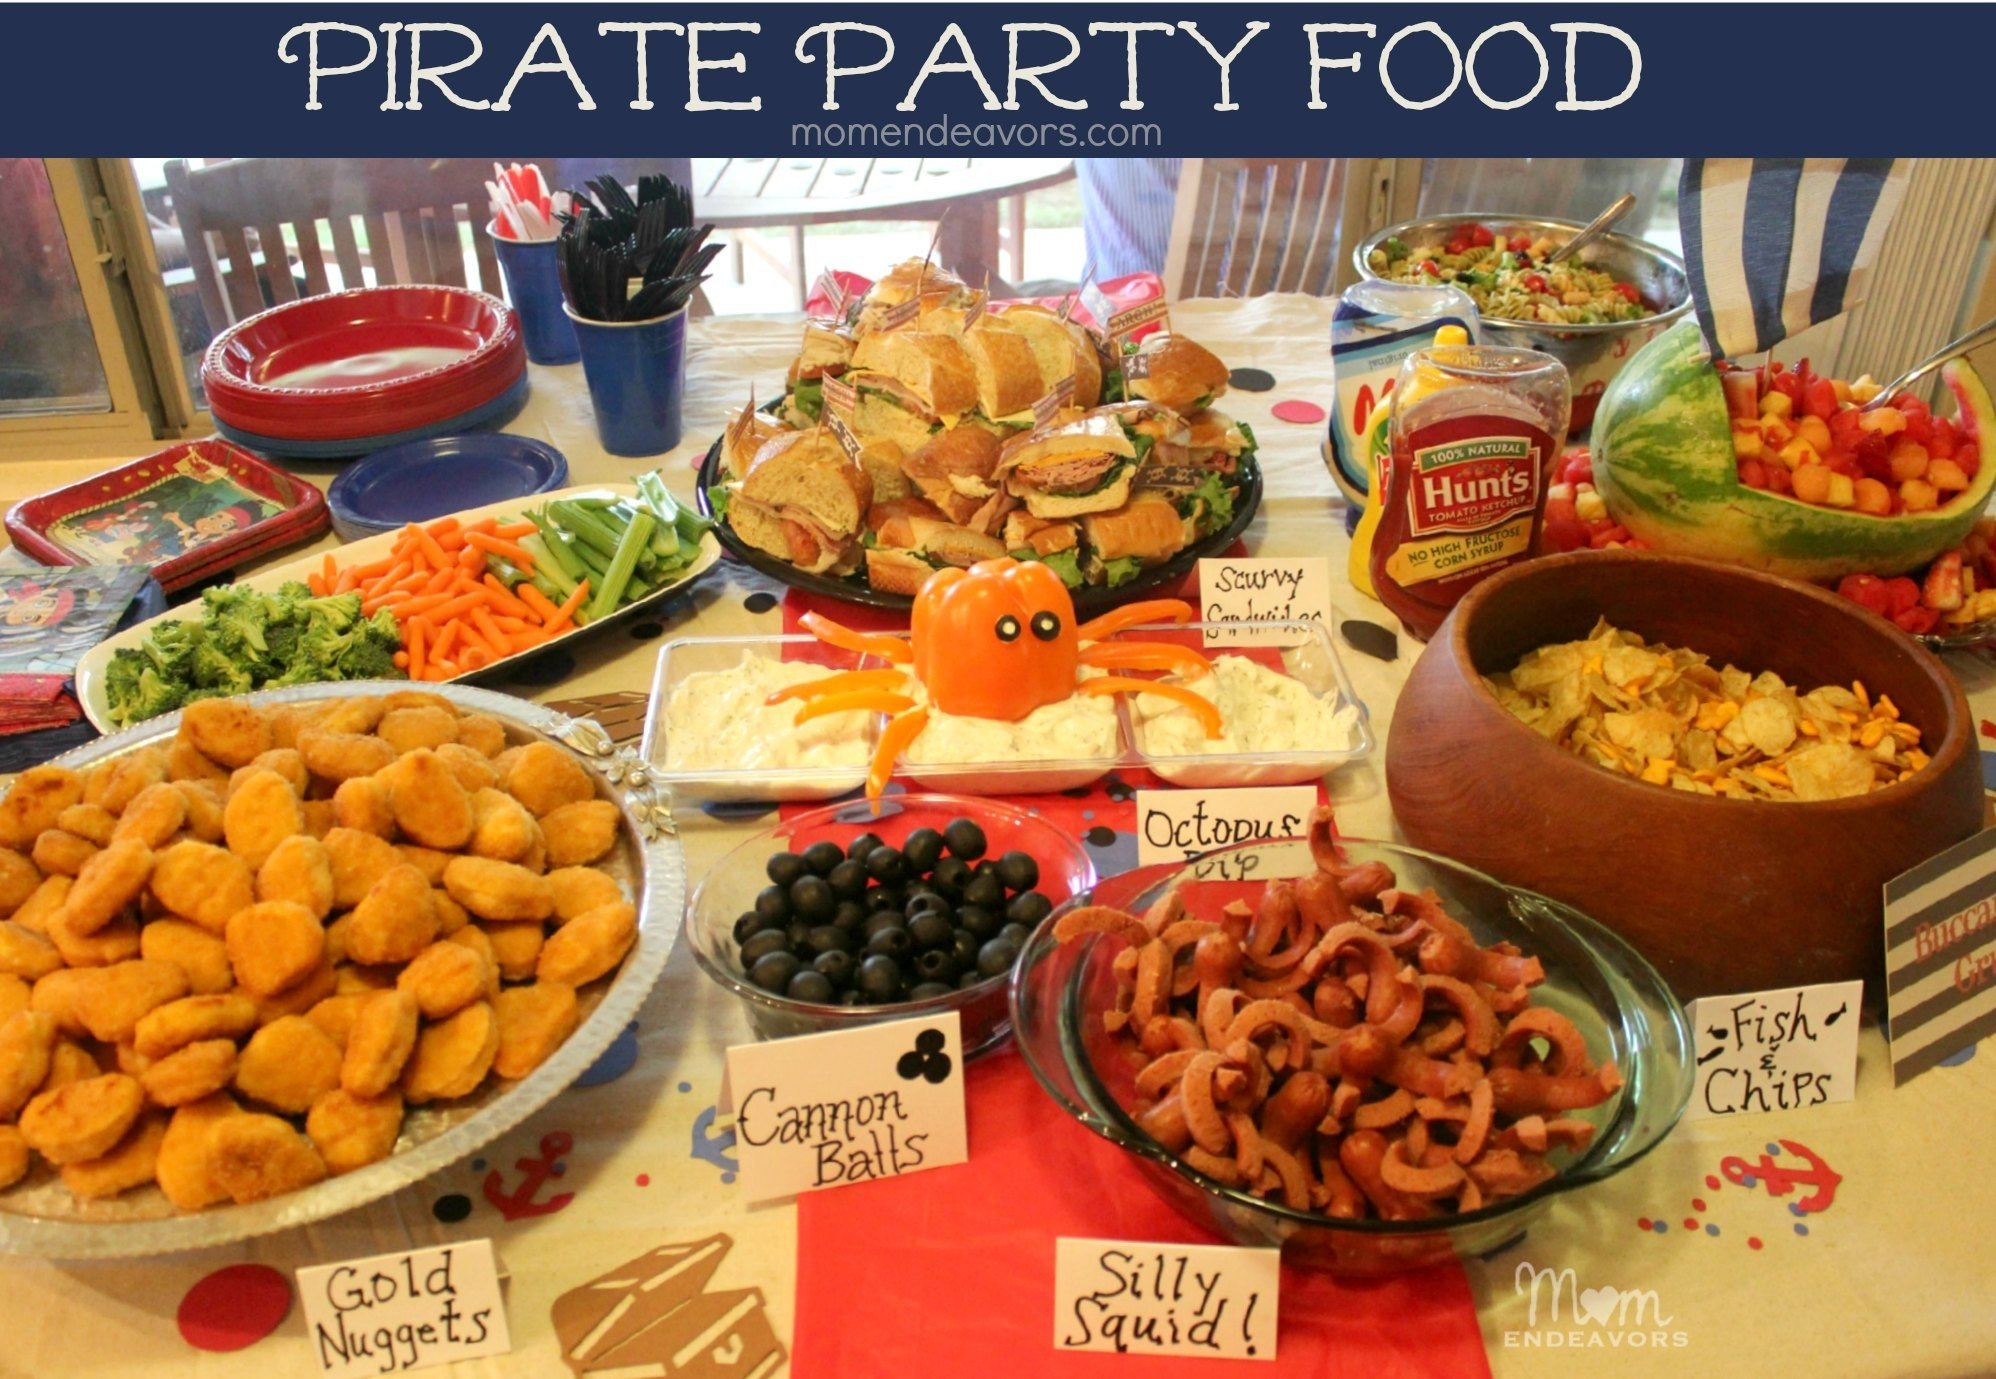 10 Lovely Food Ideas For A Birthday Party jake and the never land pirates birthday party food 8 2021